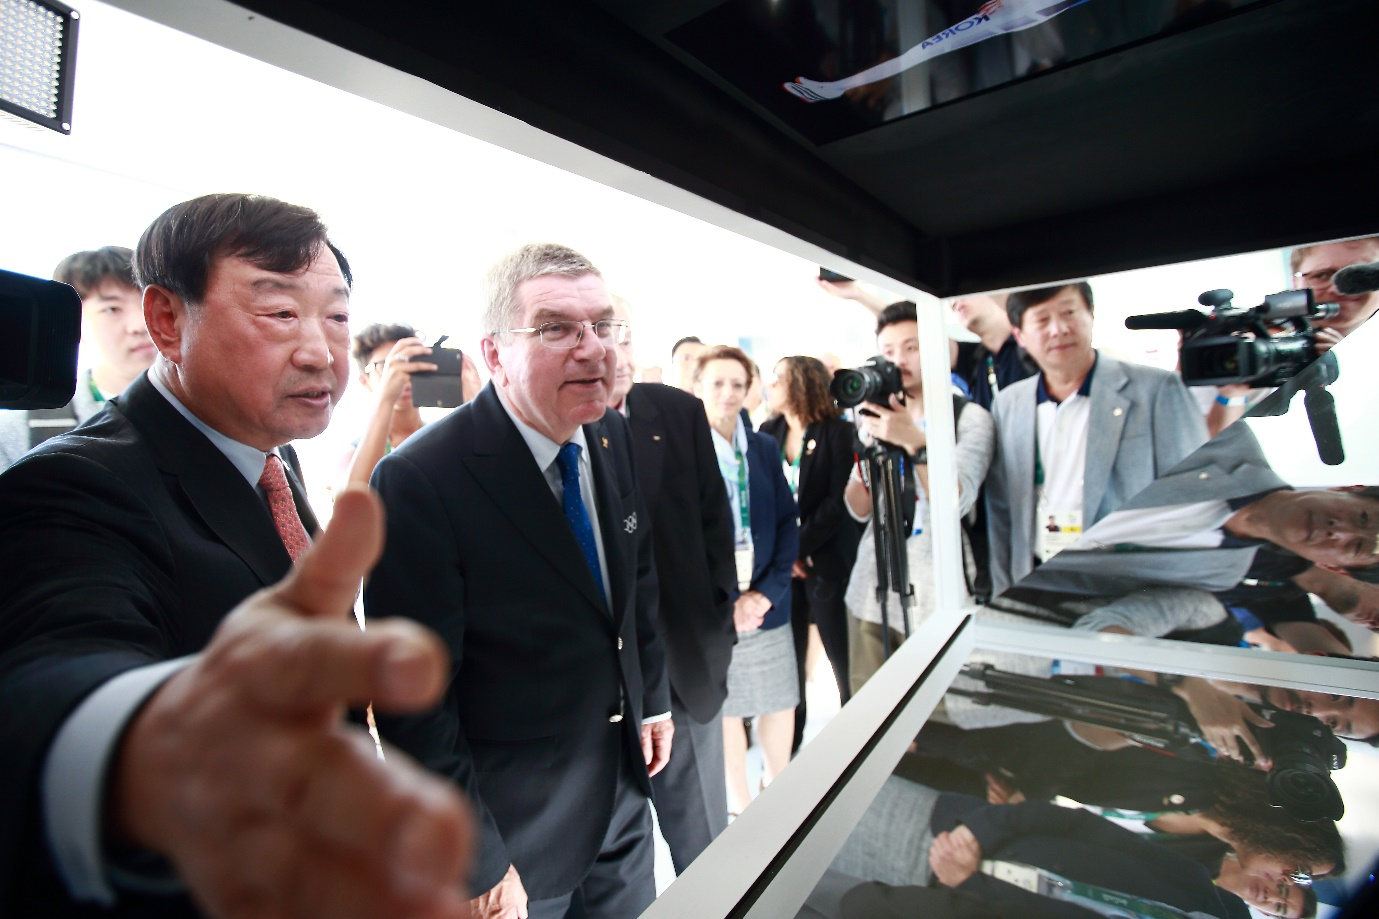 Thomas Bach, President of the IOC, is listening to the explanation by Lee Hee-beom, chairman of the Pyeongchang Olympics Organizing Committee.